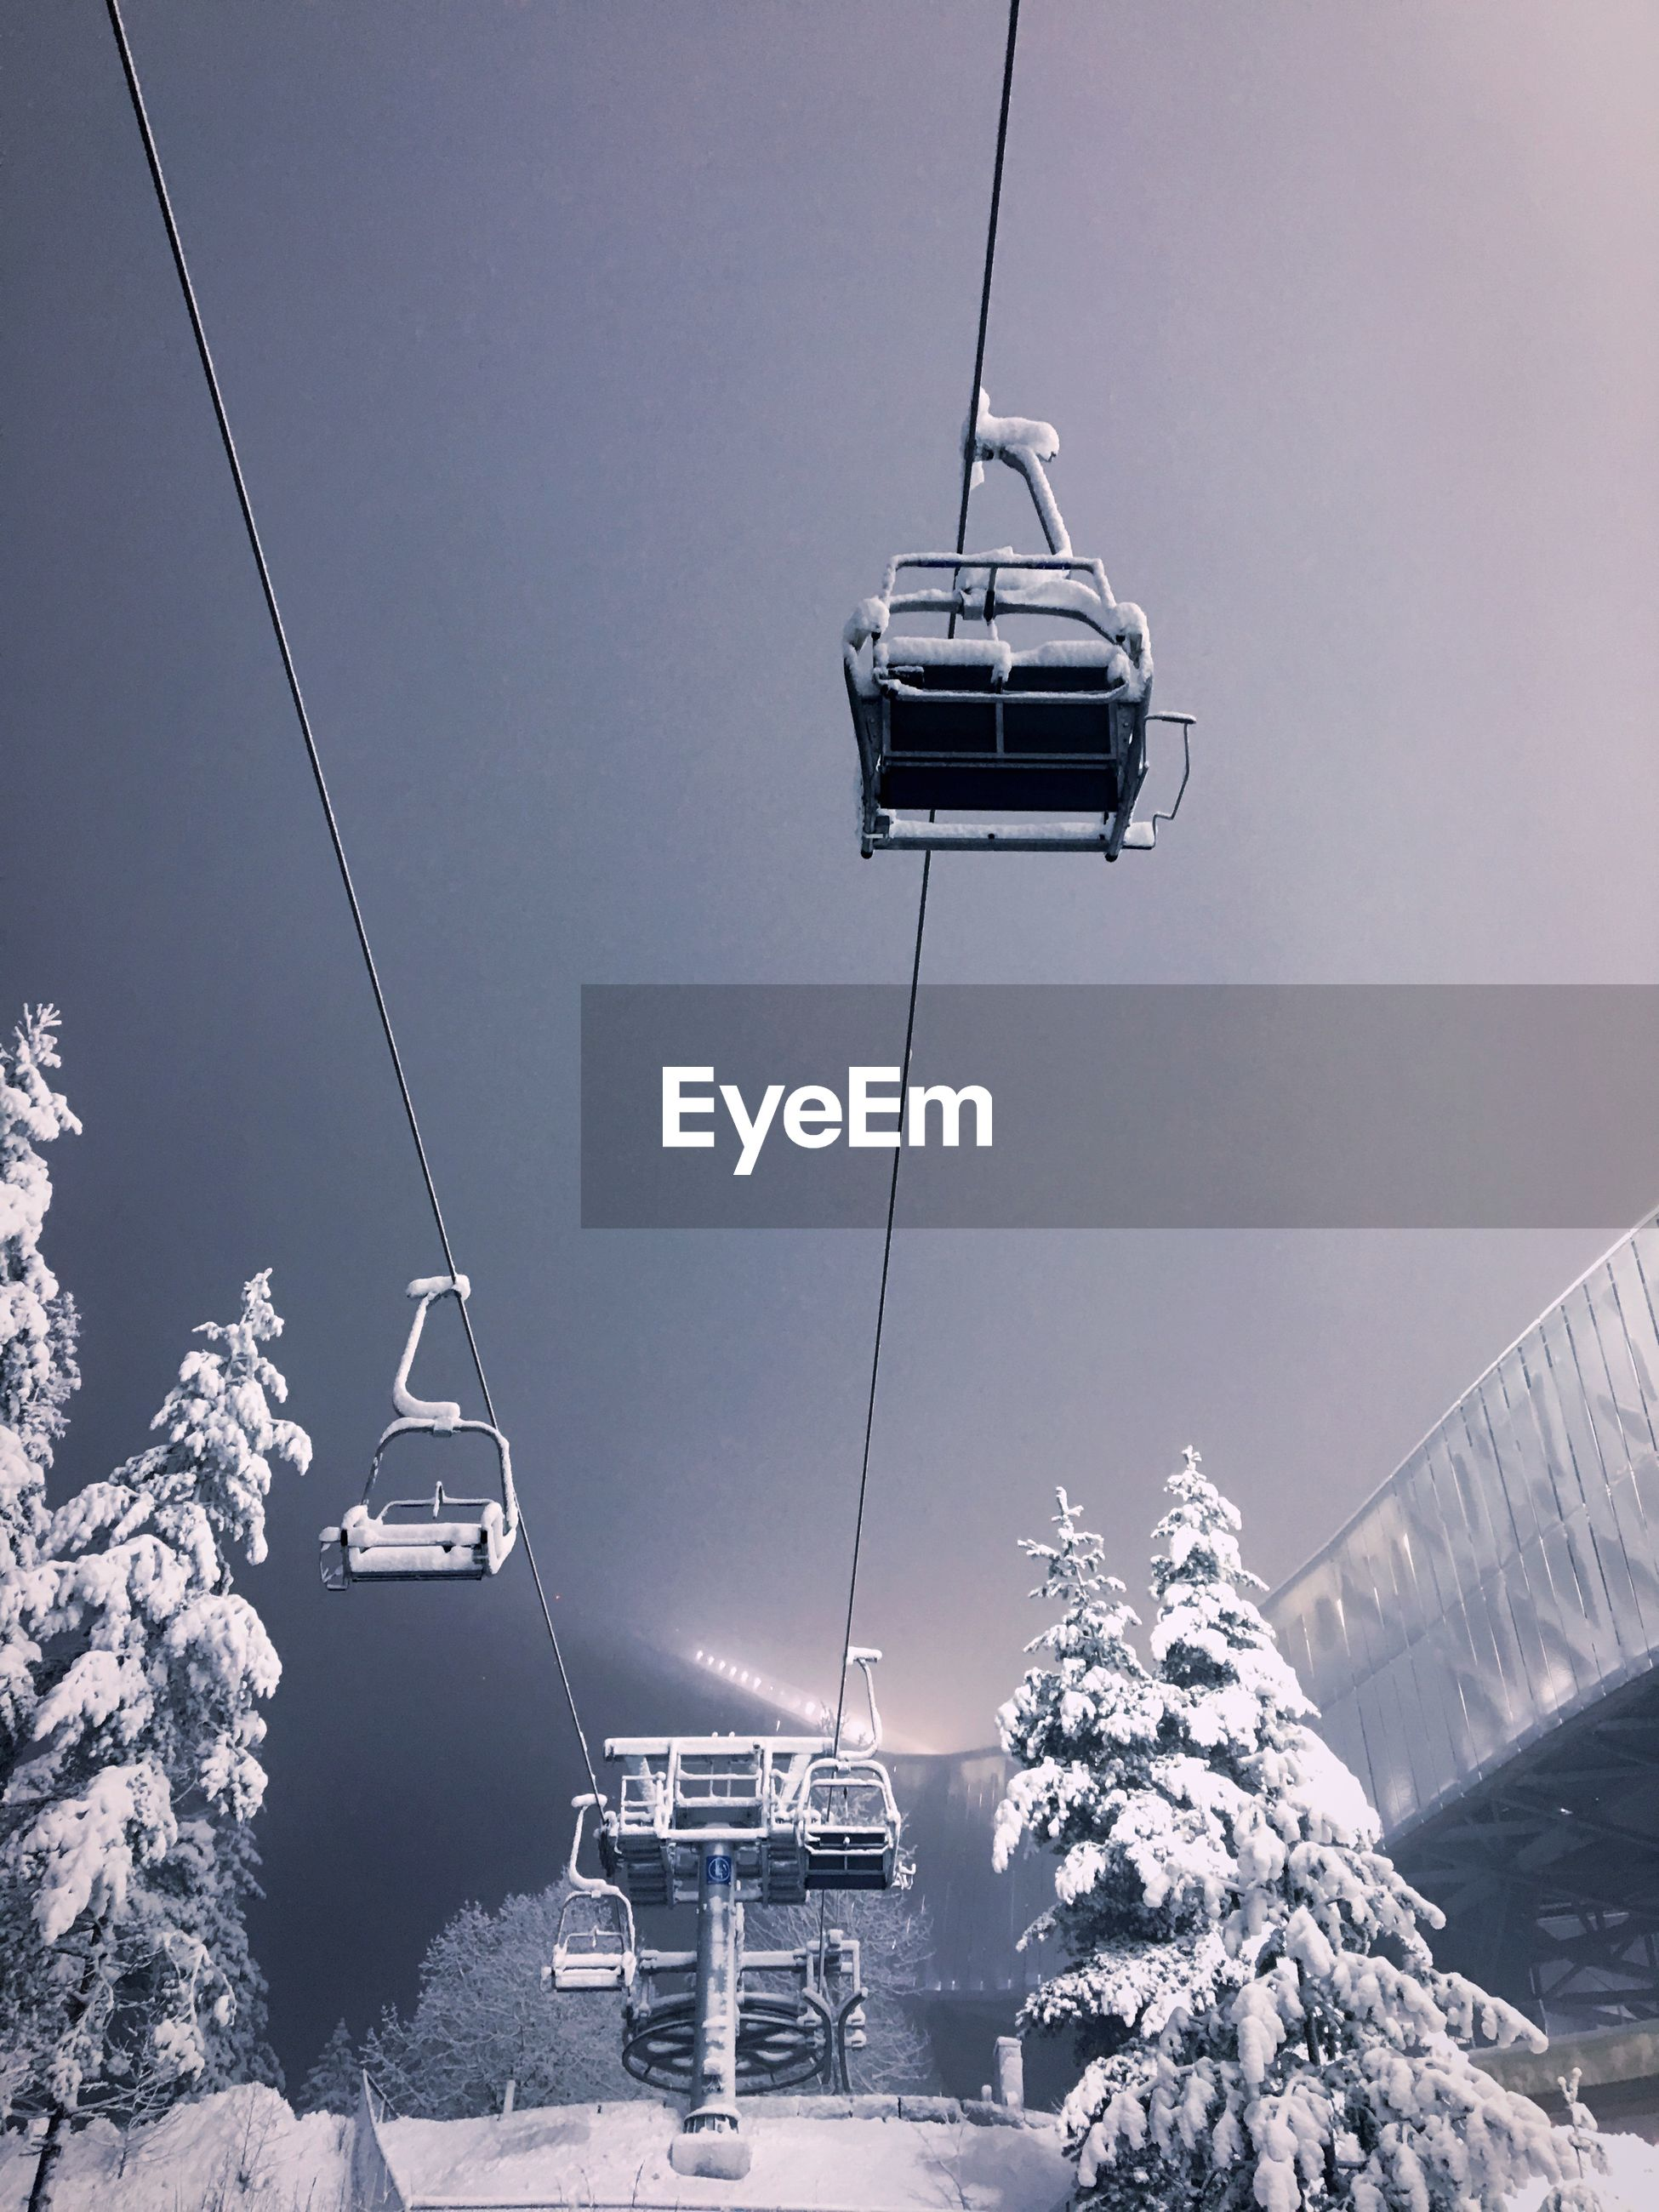 Low angle view of ski lift against sky during winter at night